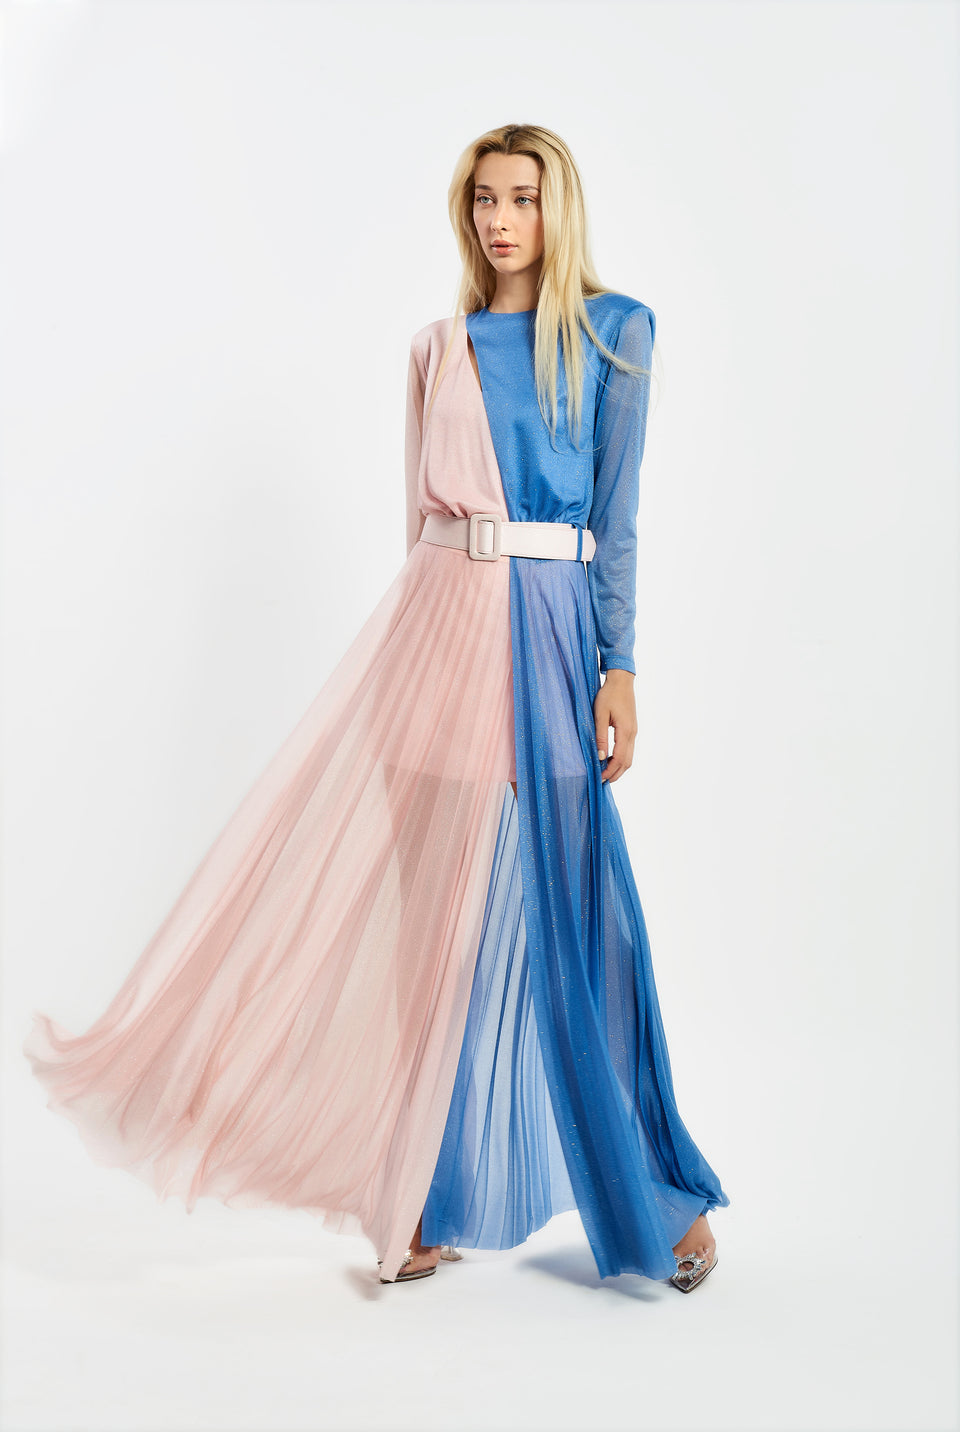 TWO-COLOR MAXI DRESS IN LUREX FABRIC PINK